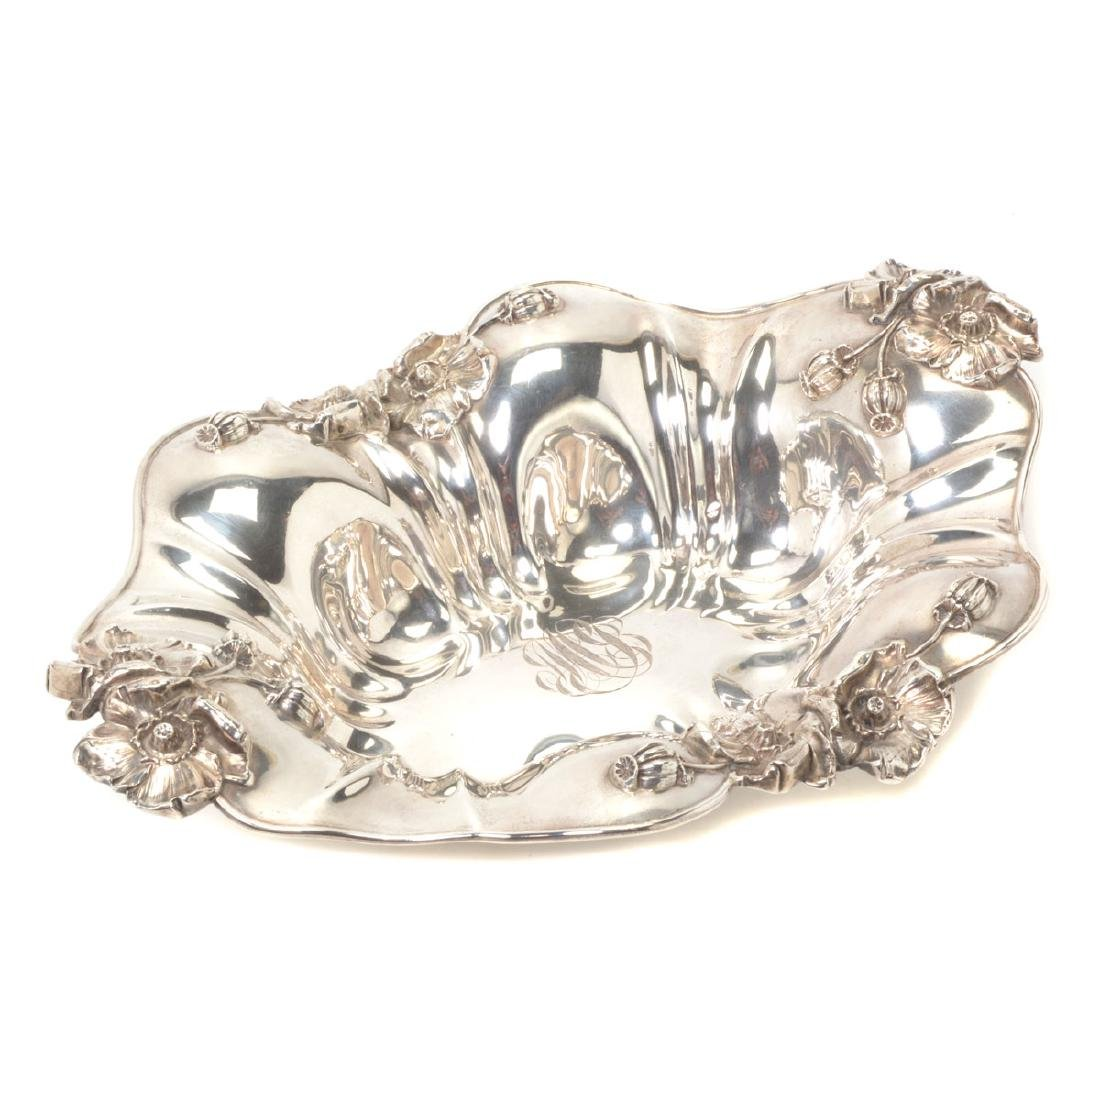 Art Nouveau Sterling Bowl with Floral Decoration